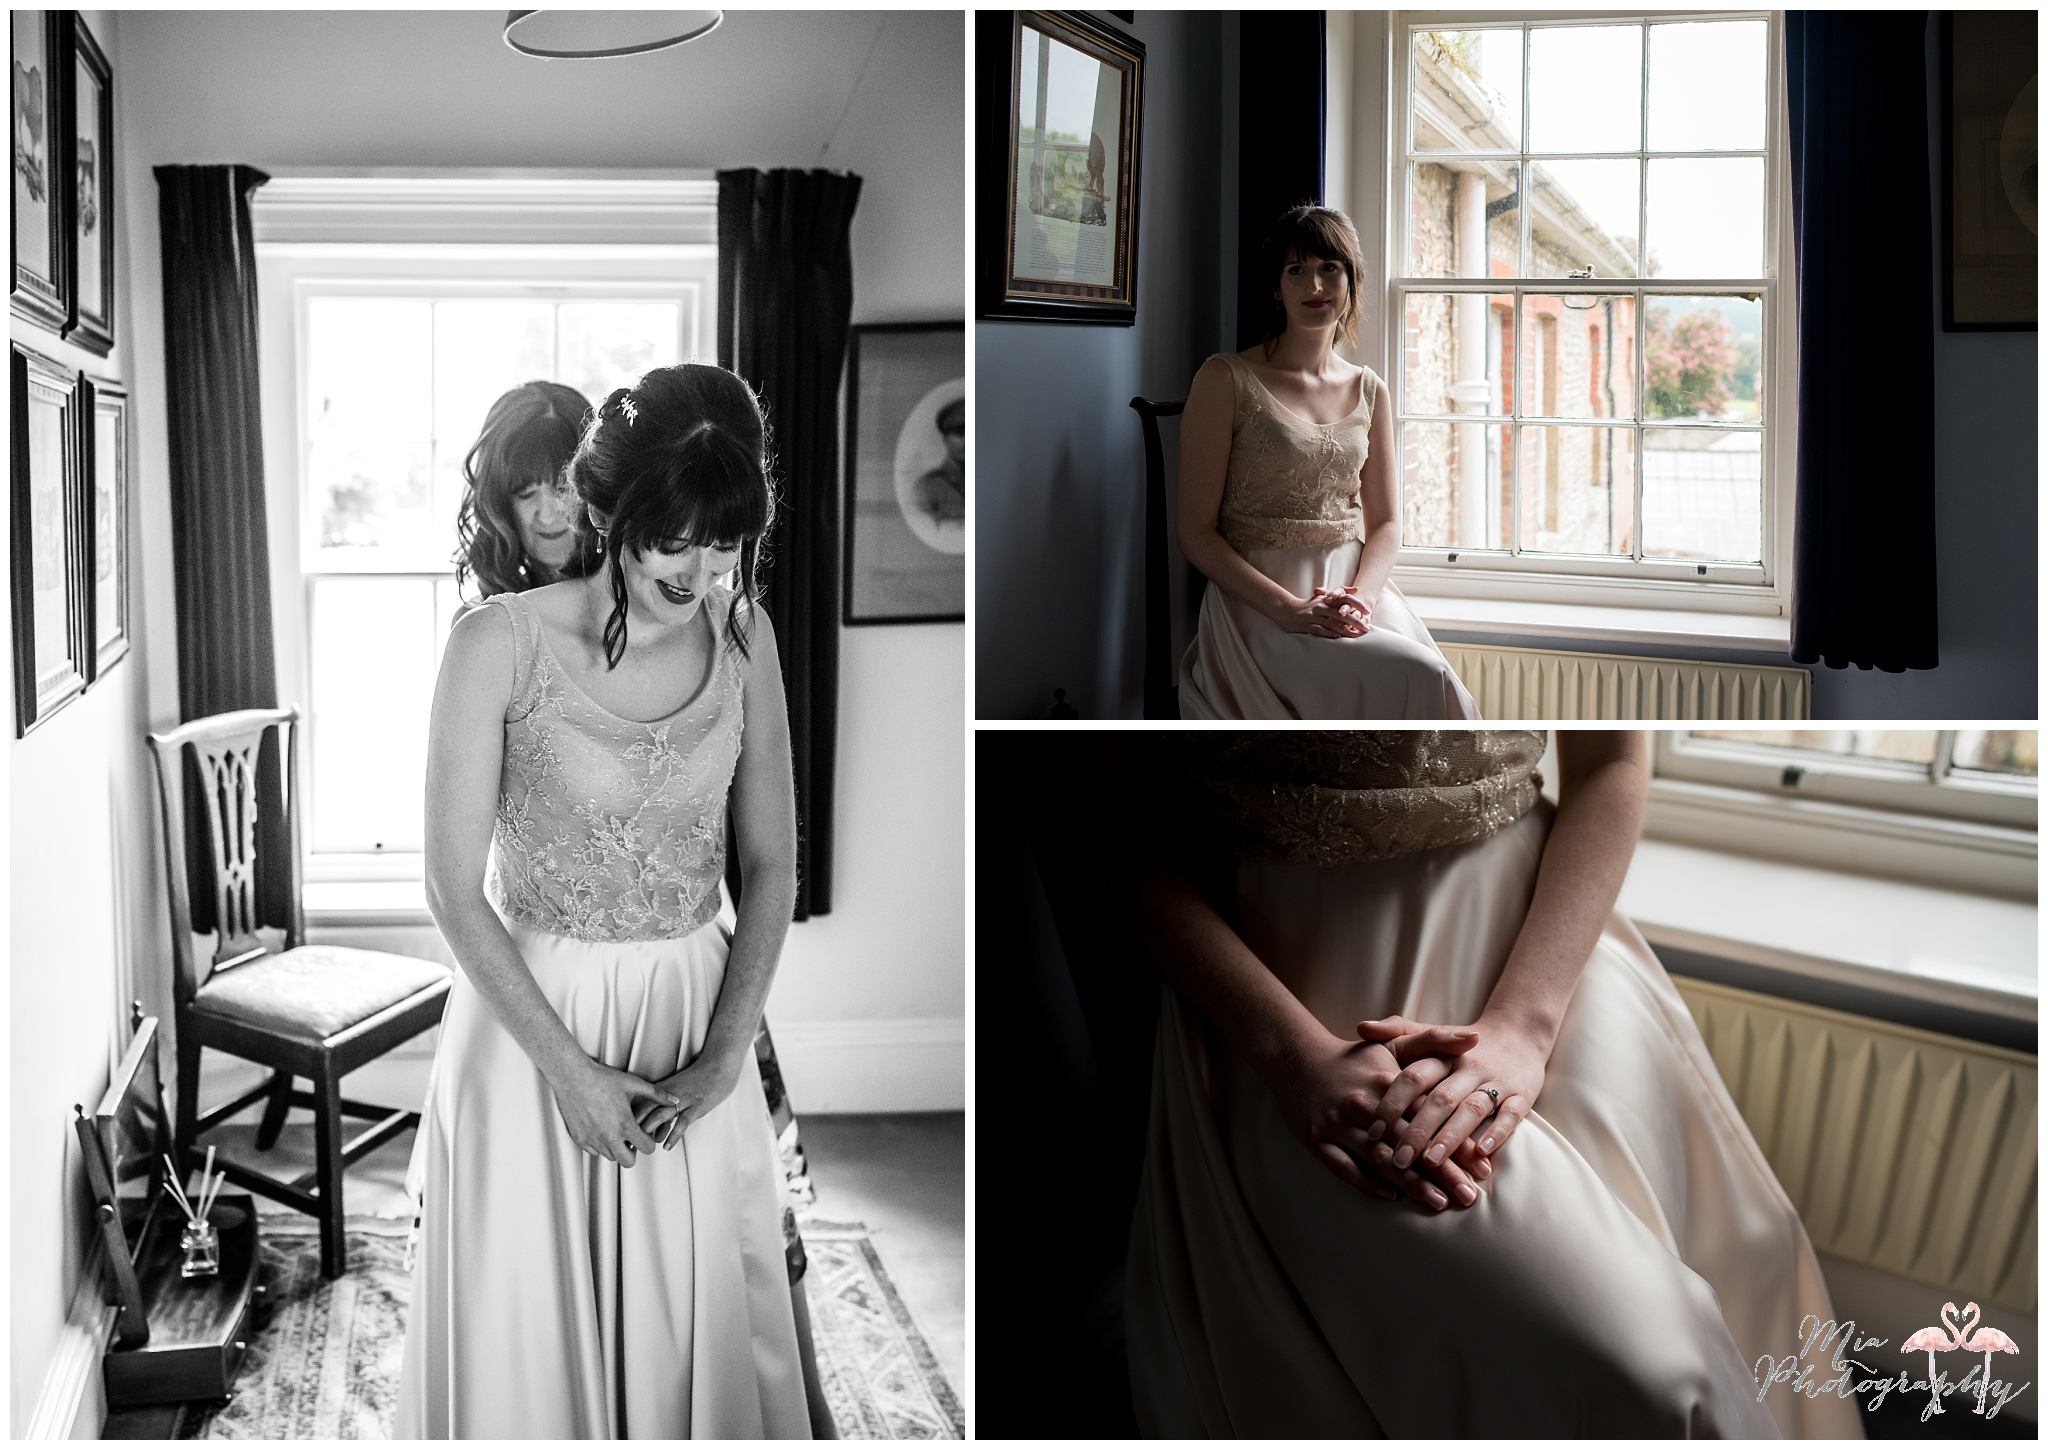 Bride getting ready for her wedding in West Sussex